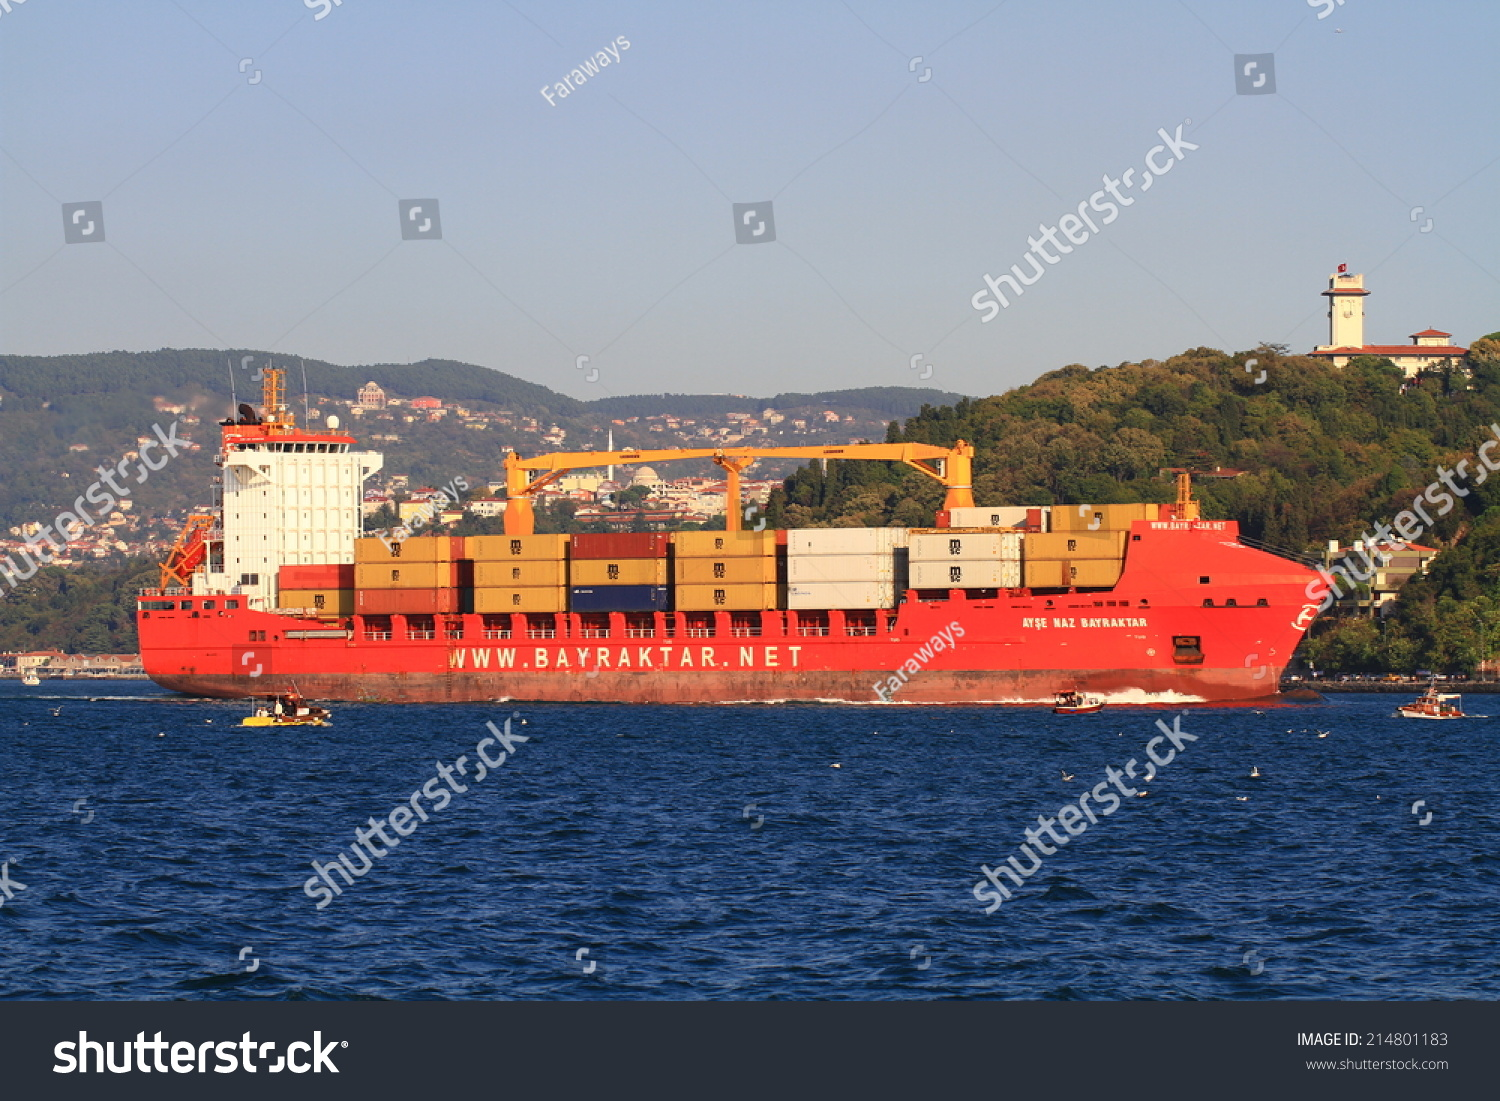 Stock photo istanbul oct container ship ayse naz bayraktar imo turkey - Istanbul Oct 26 2012 Container Ship Ayse Naz Bayraktar